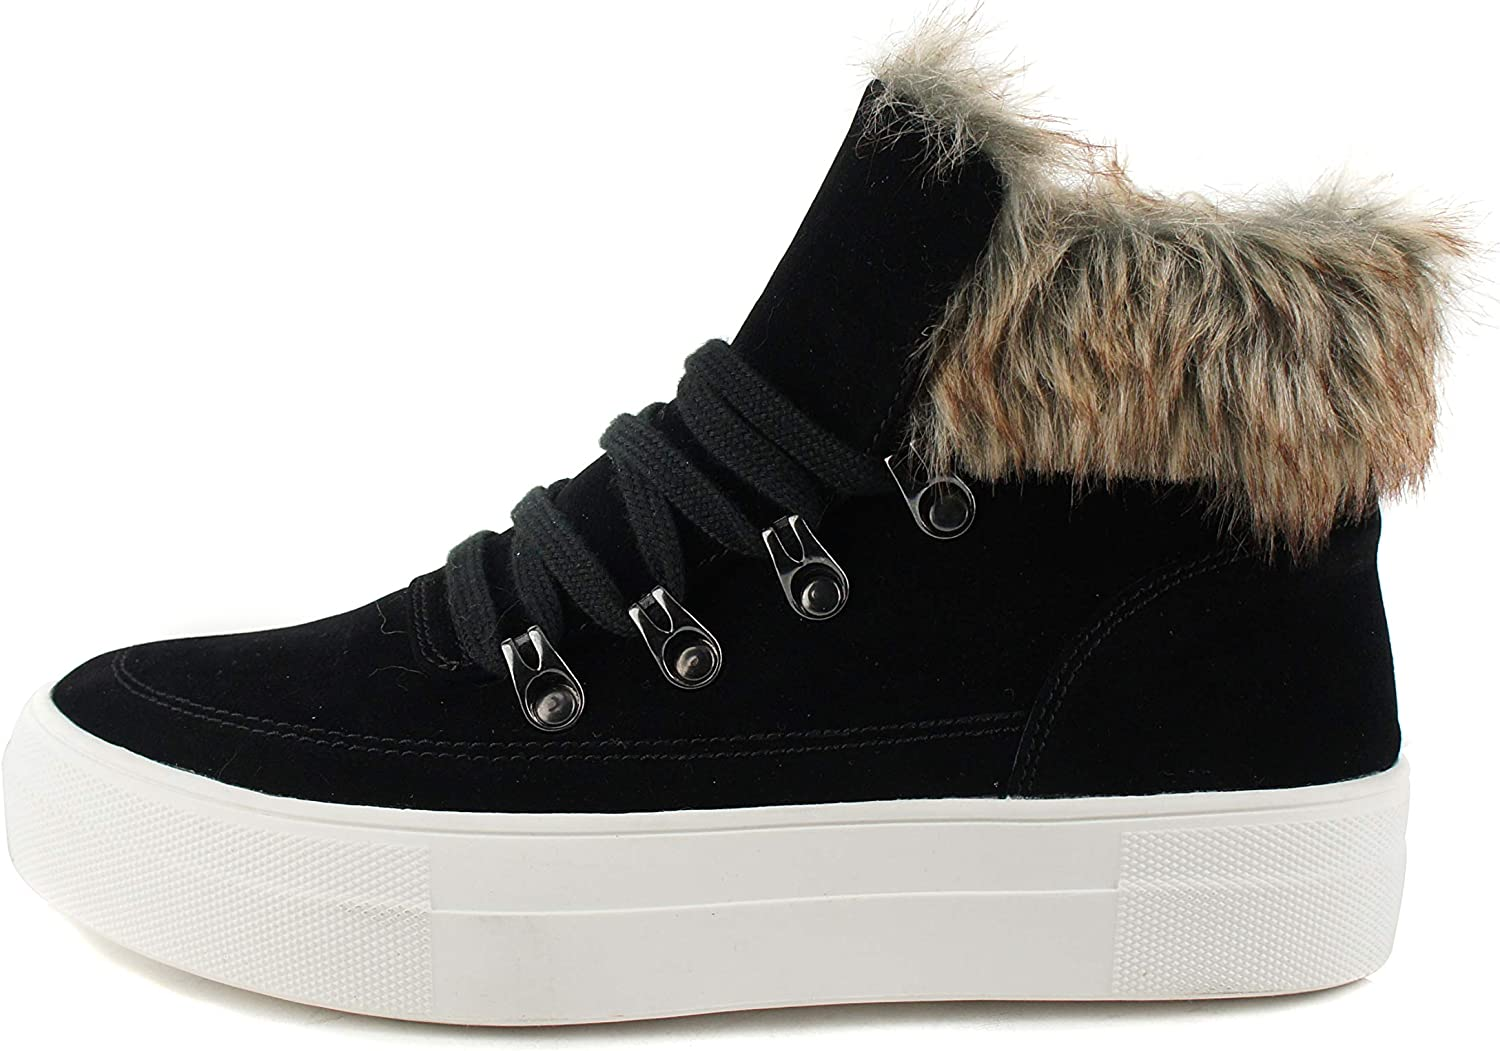 Soda Style Fury – Flossie Faux Fur Fashion High Top Sneaker Bootie with Lace up